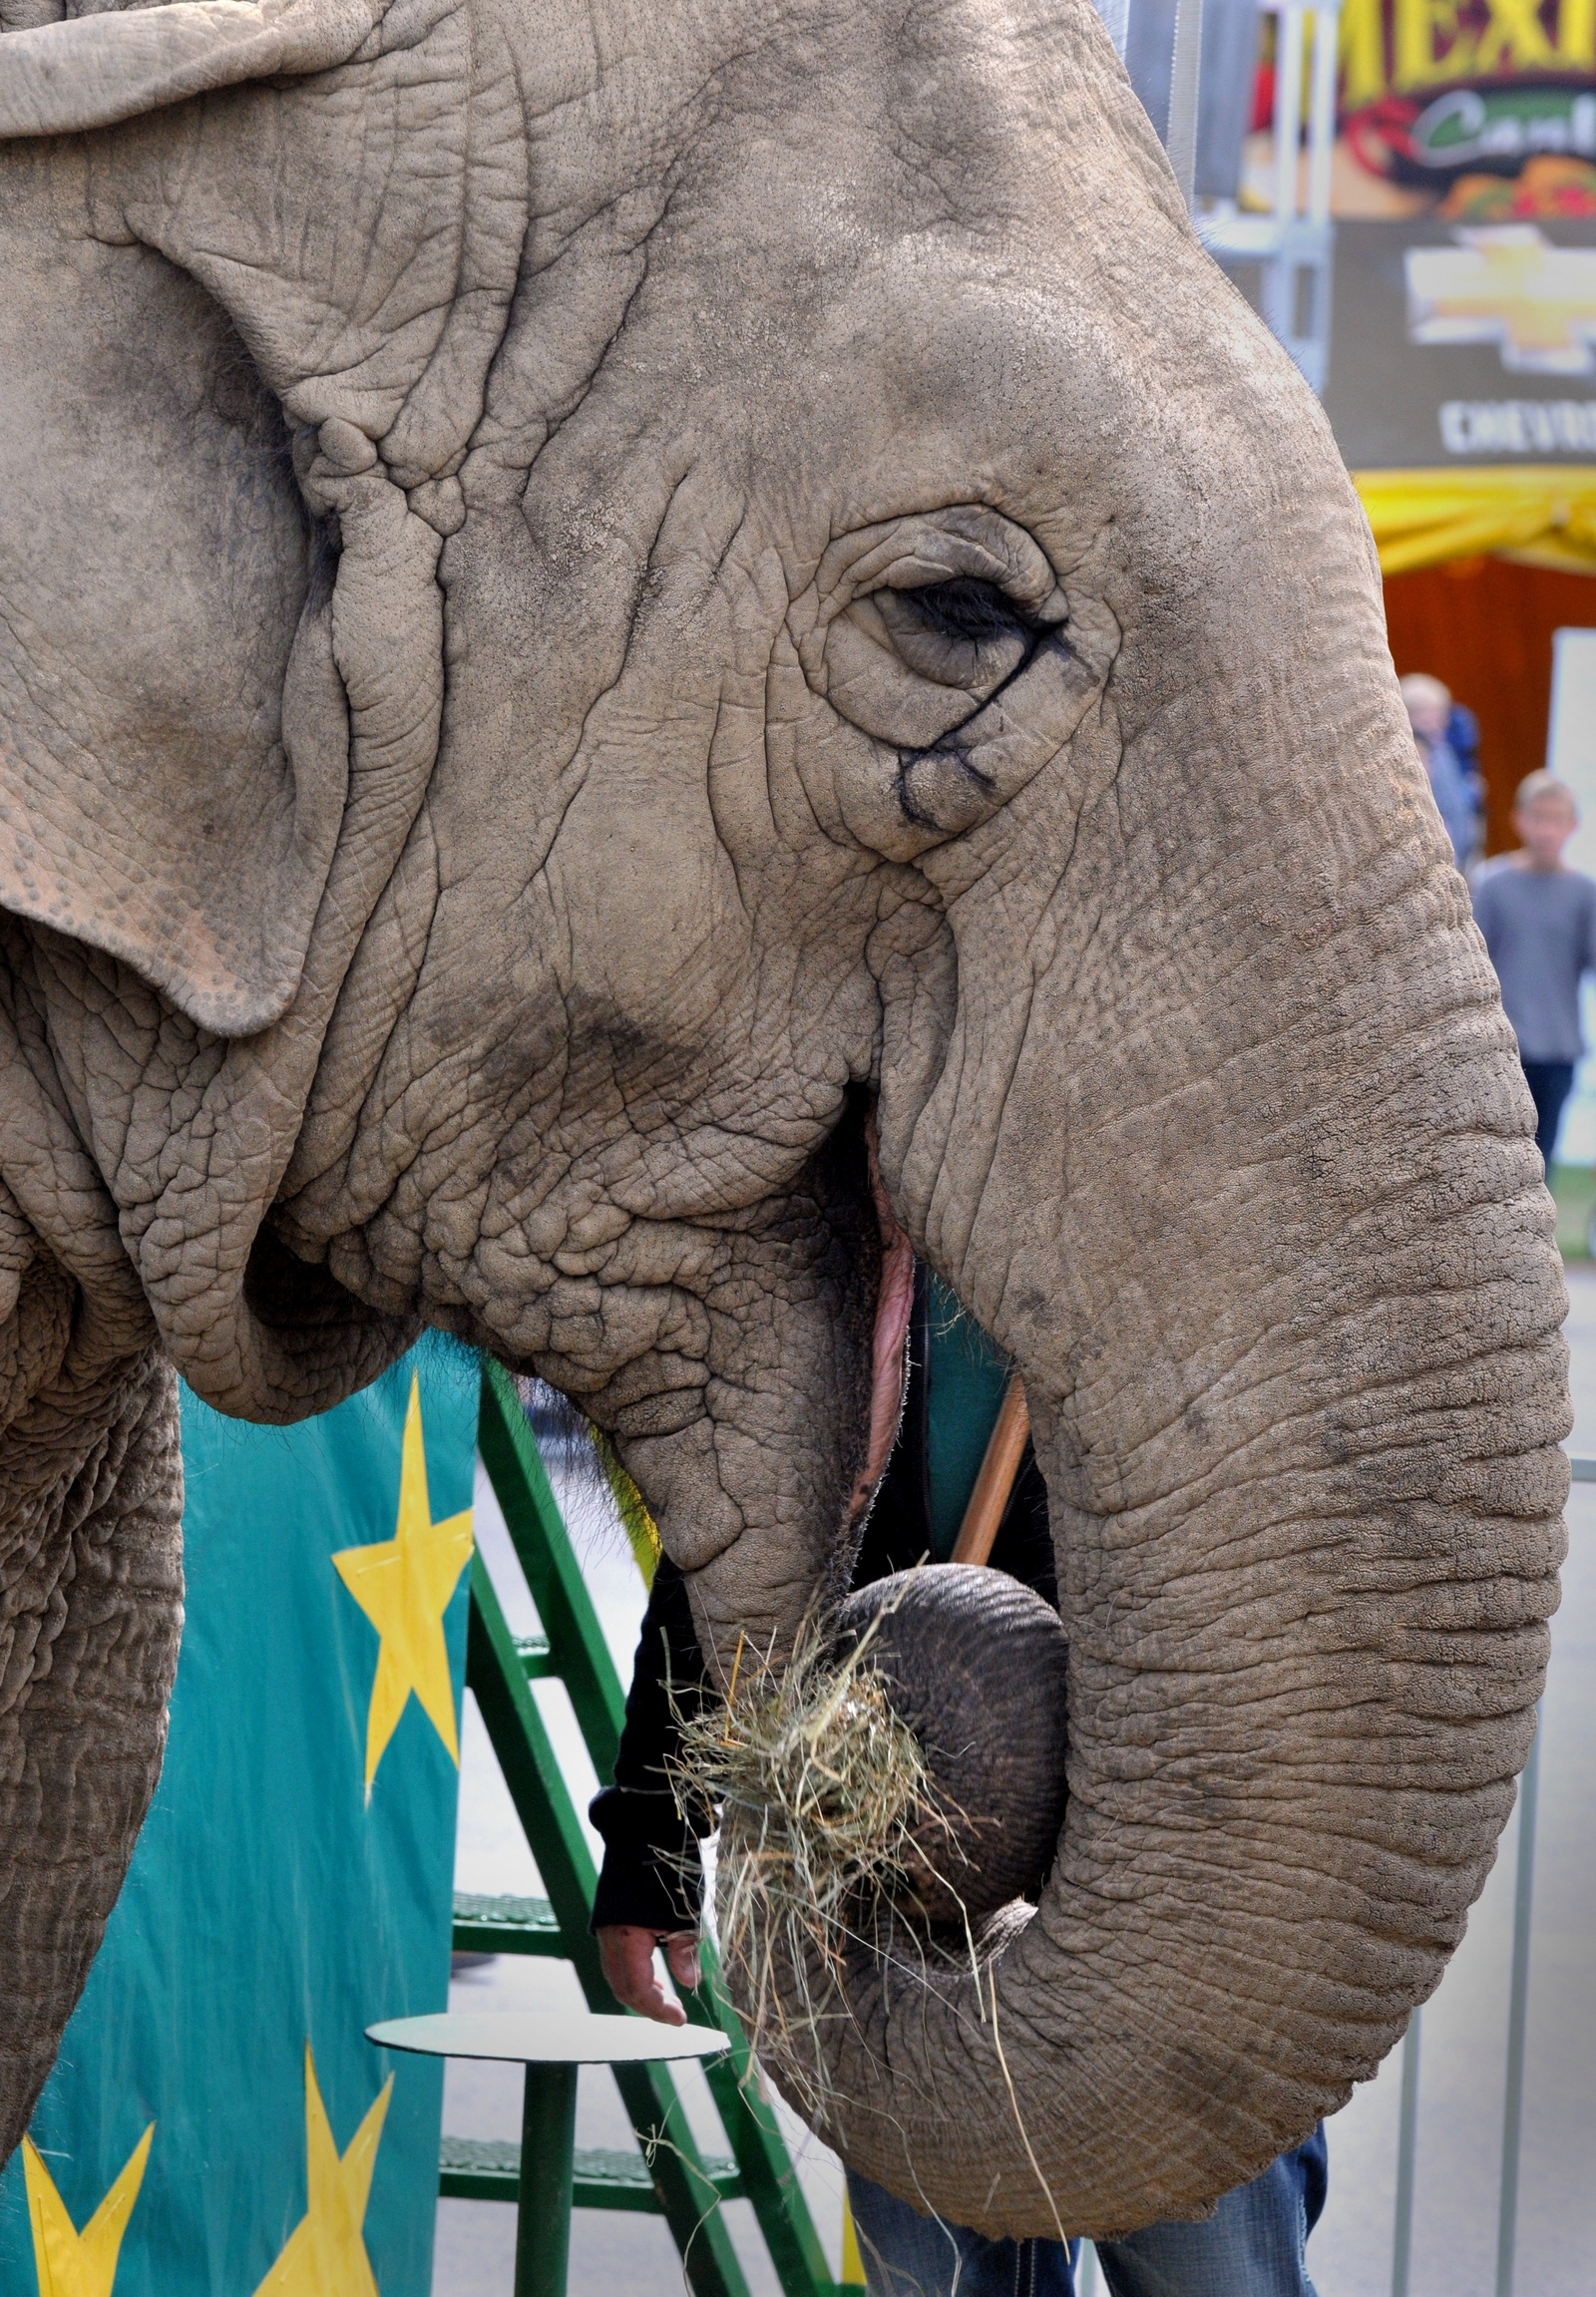 The Big E announces death of Beulah the elephant, 54; Fair officials say she died of natural causes